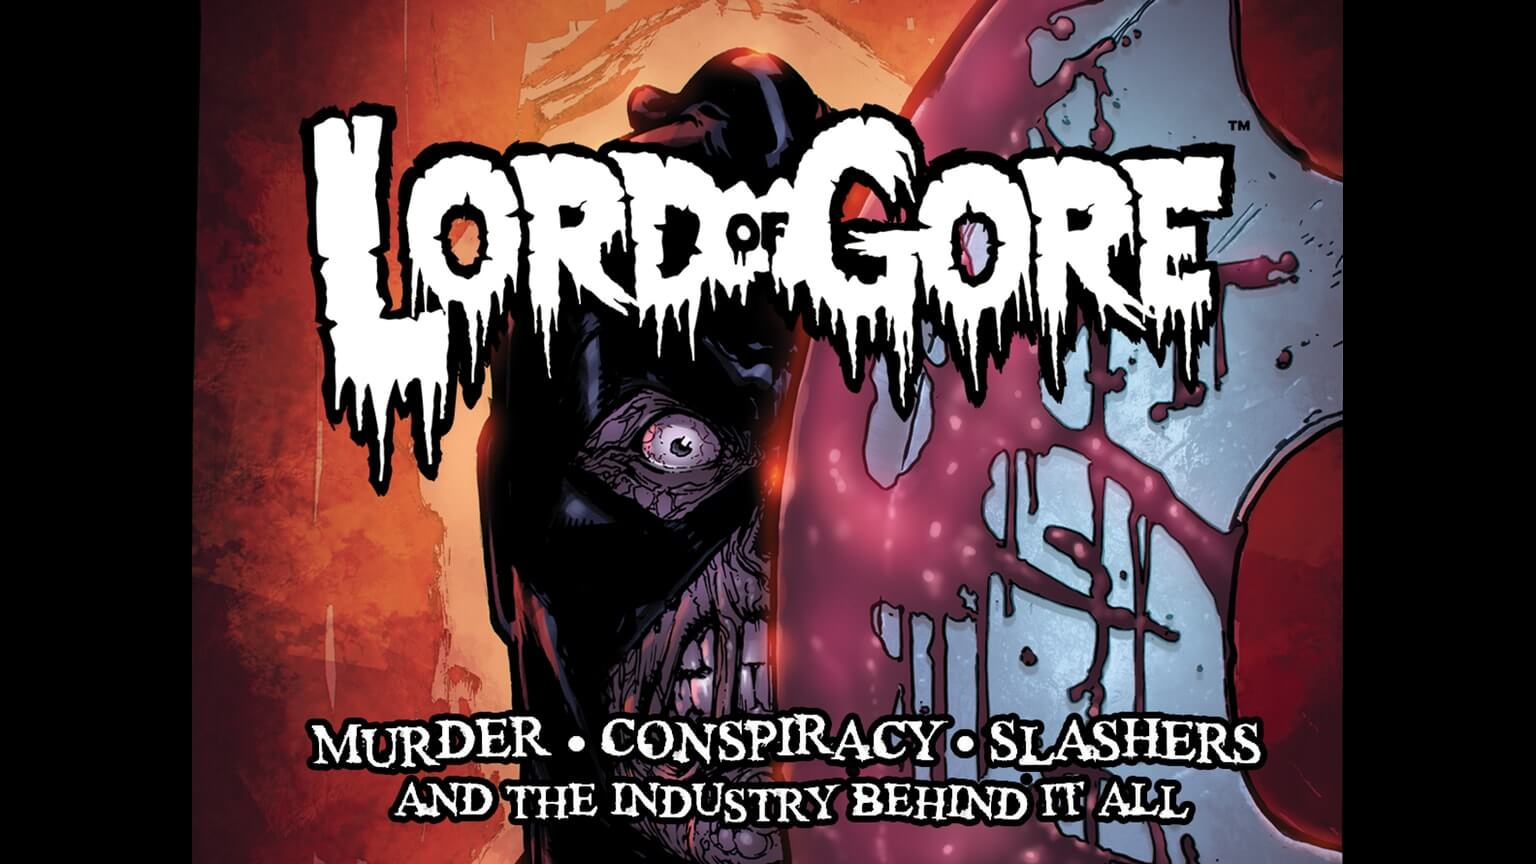 lord of gore2 1 - Kneel Before the Lord of Gore